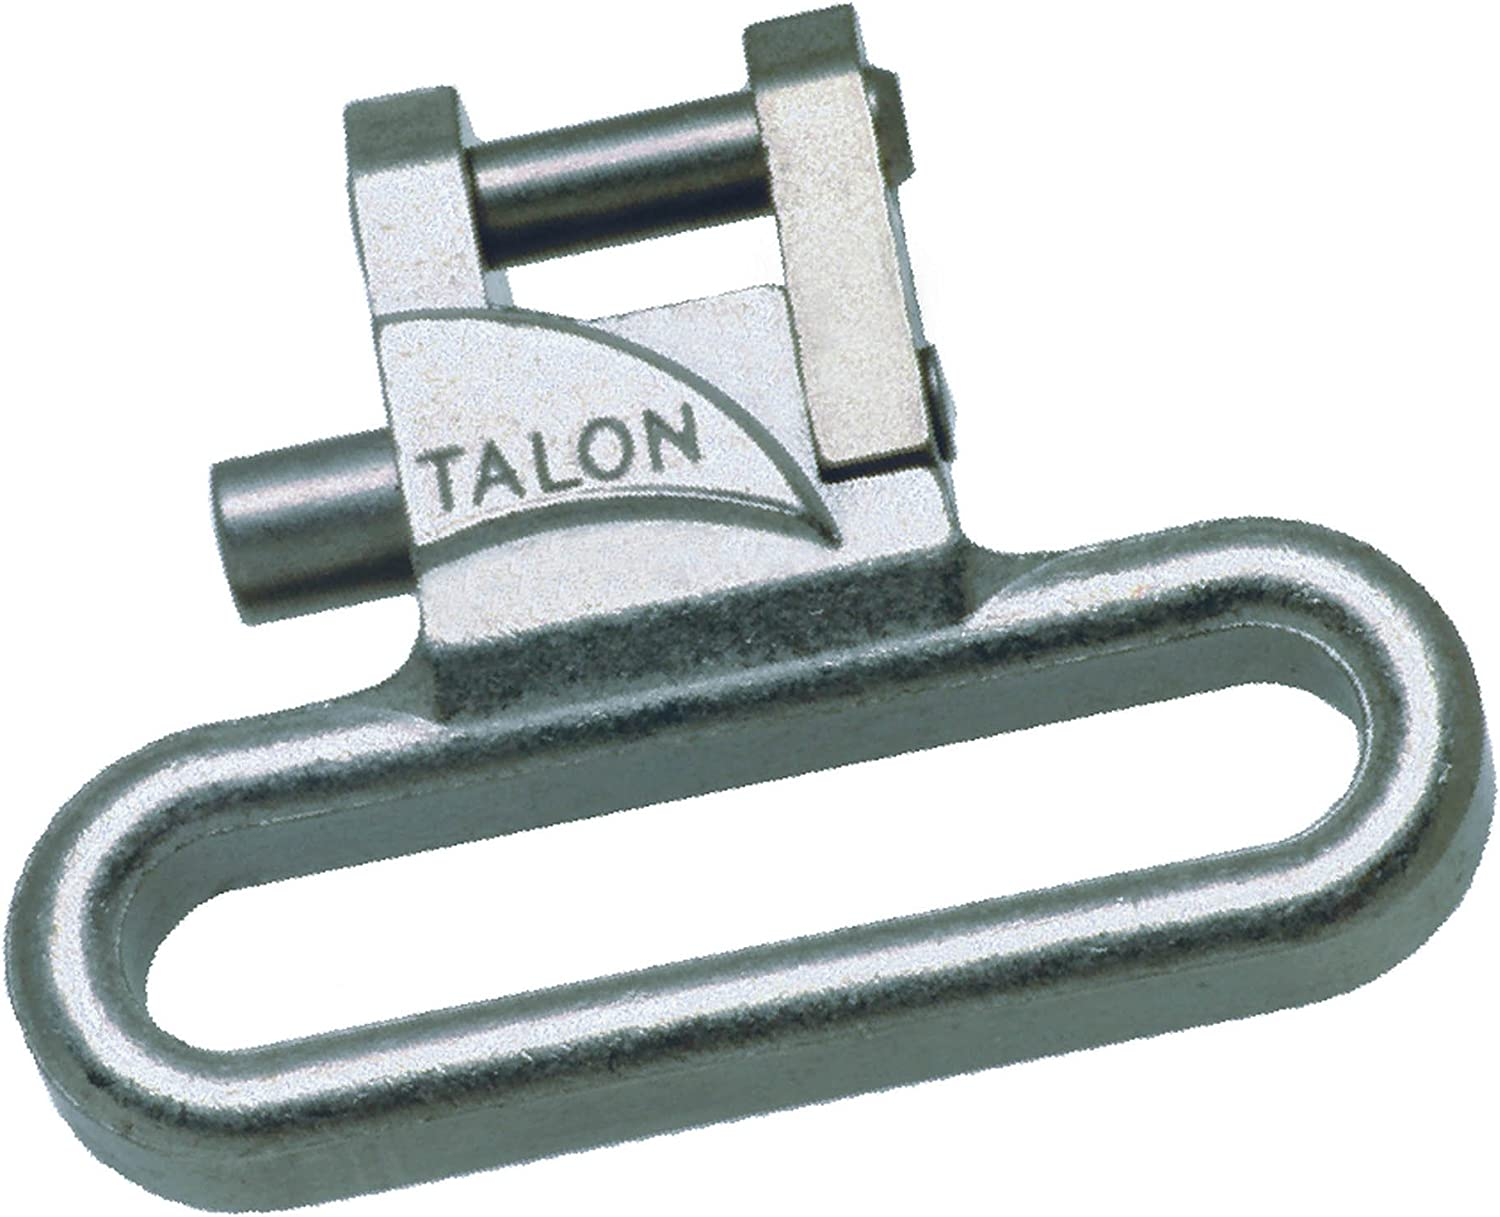 "The Outdoor Connection Talon 1"" Swivels & Swivel Bases, Stainless Steel"